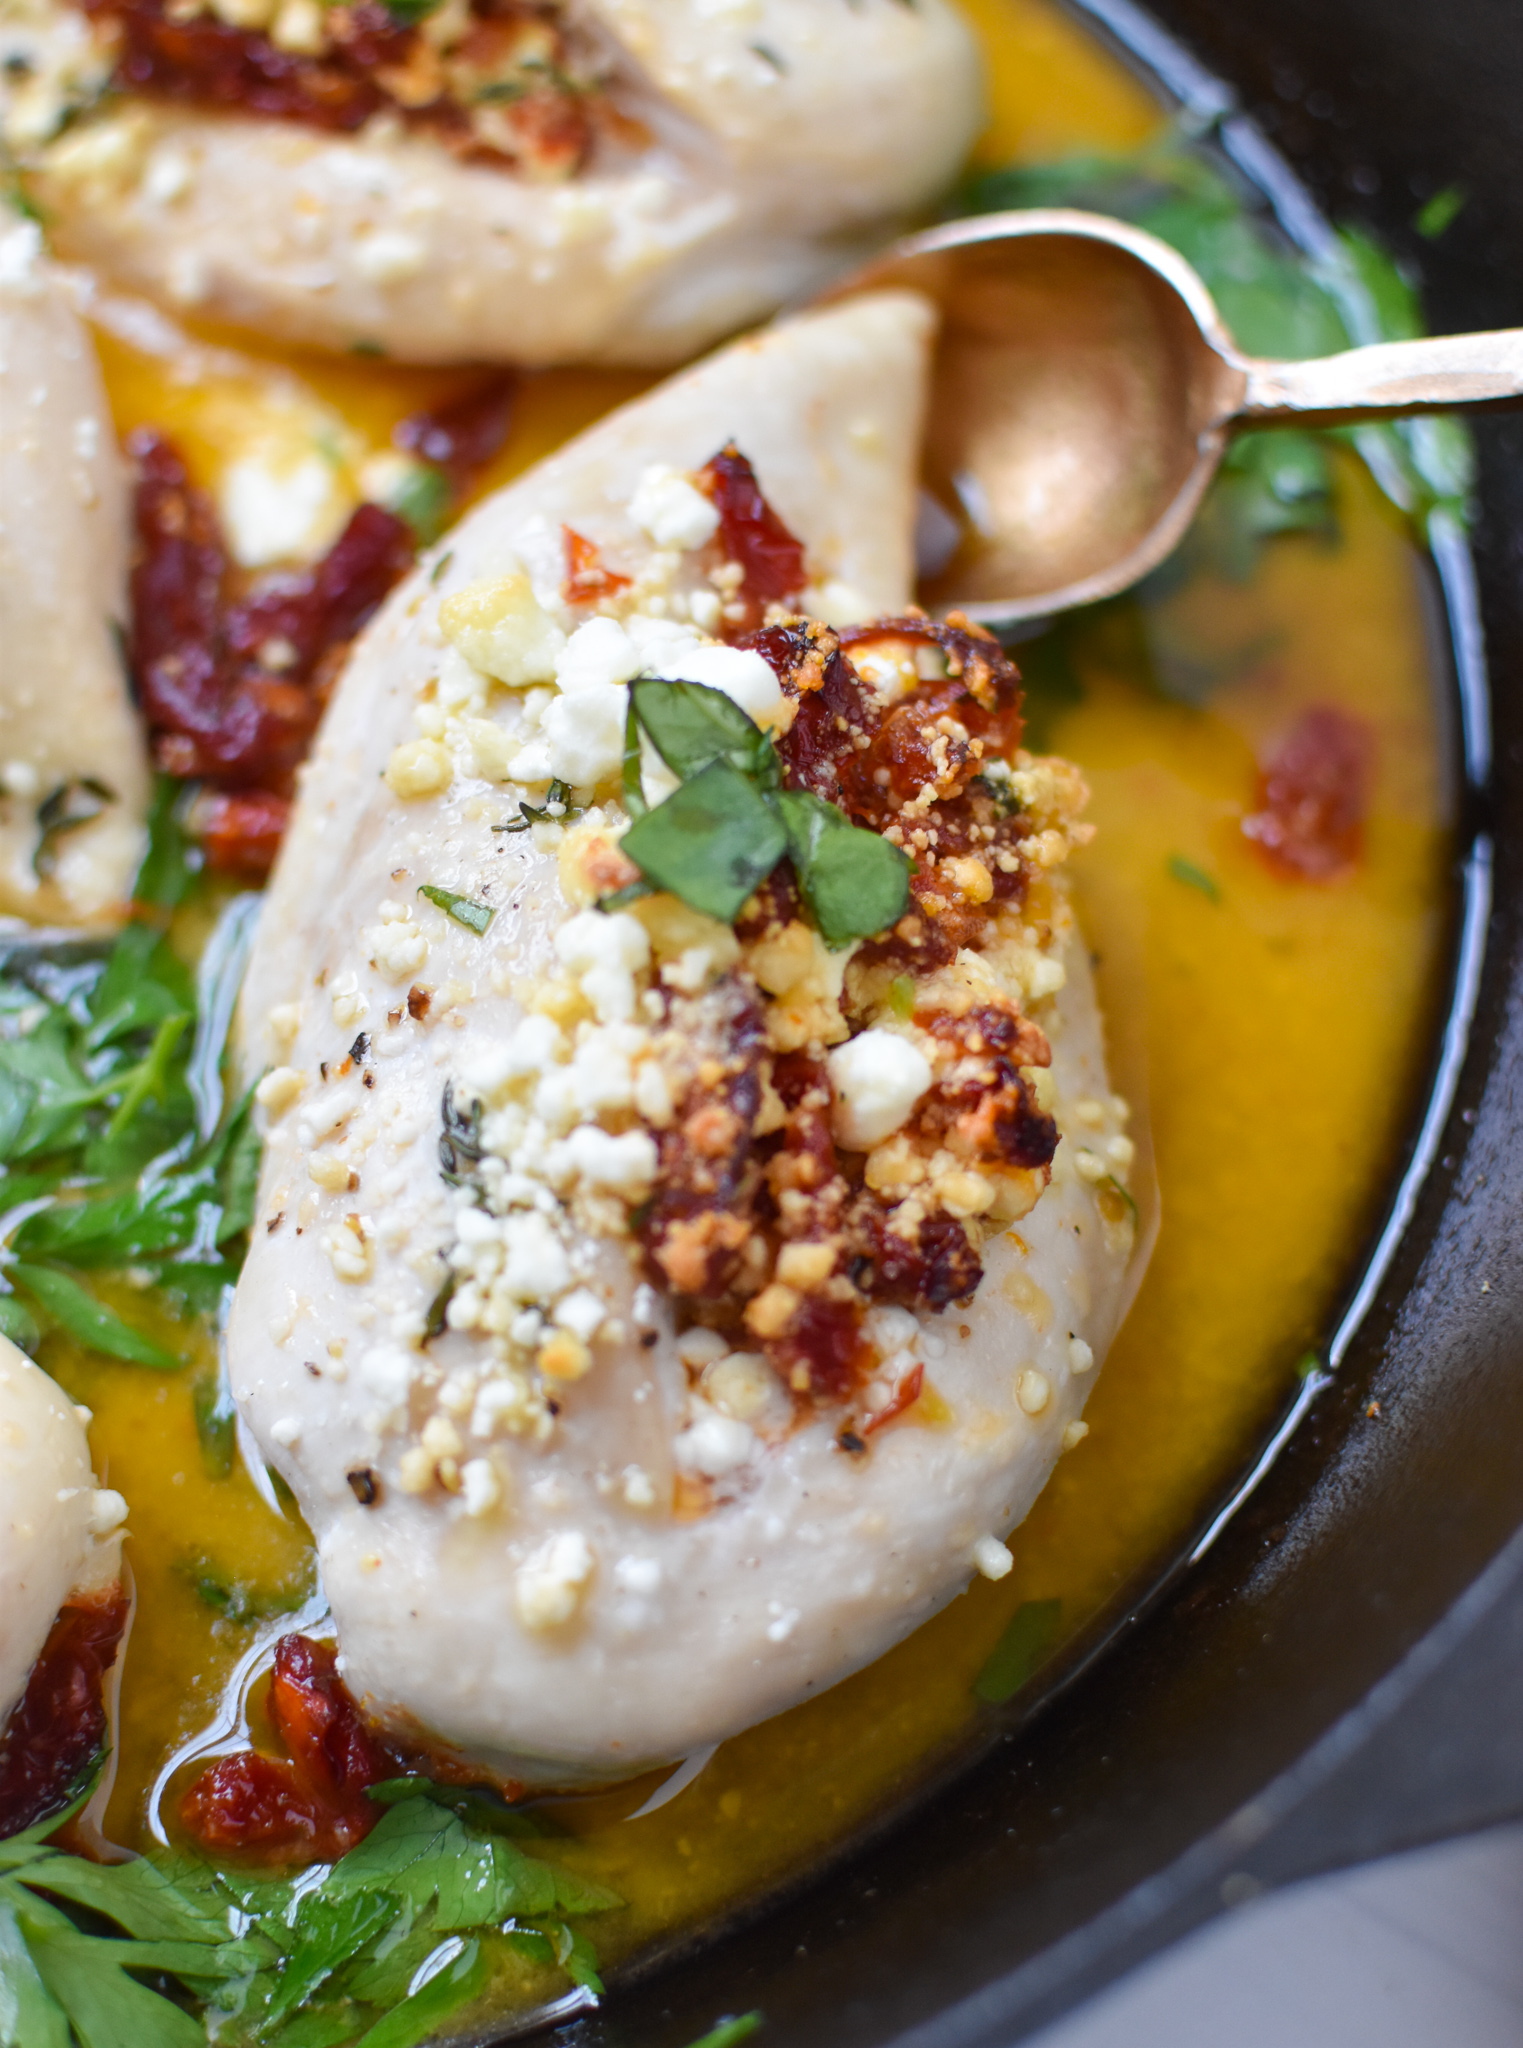 Sun-dried Tomato Goat Cheese Stuffed Chicken Breasts with spoon.